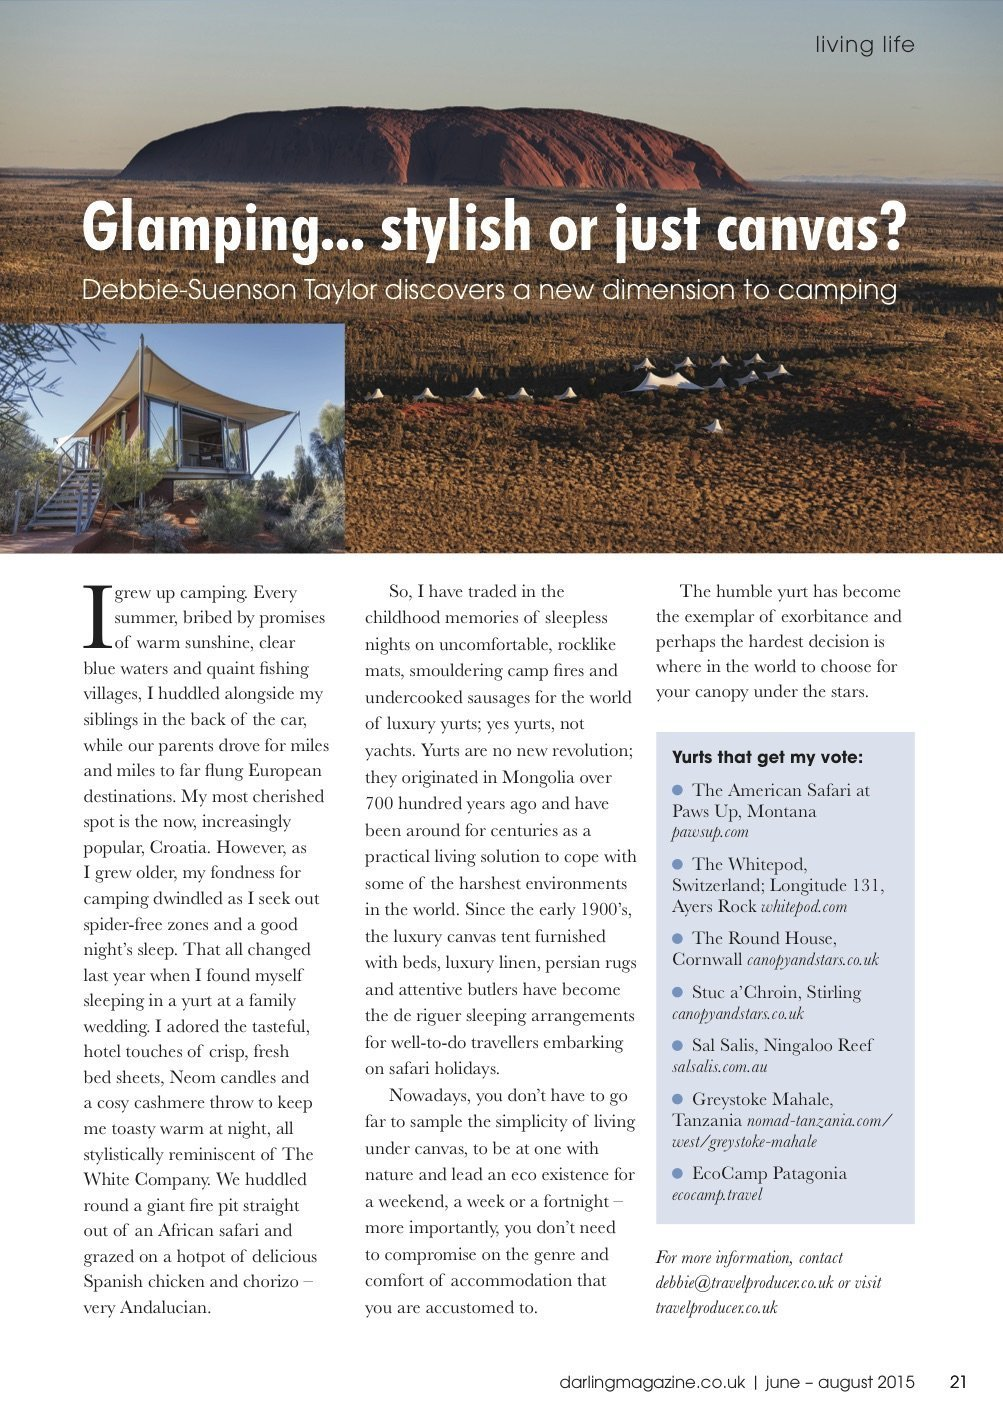 GLAMPING ... STYLISH OR JUST CANVAS?